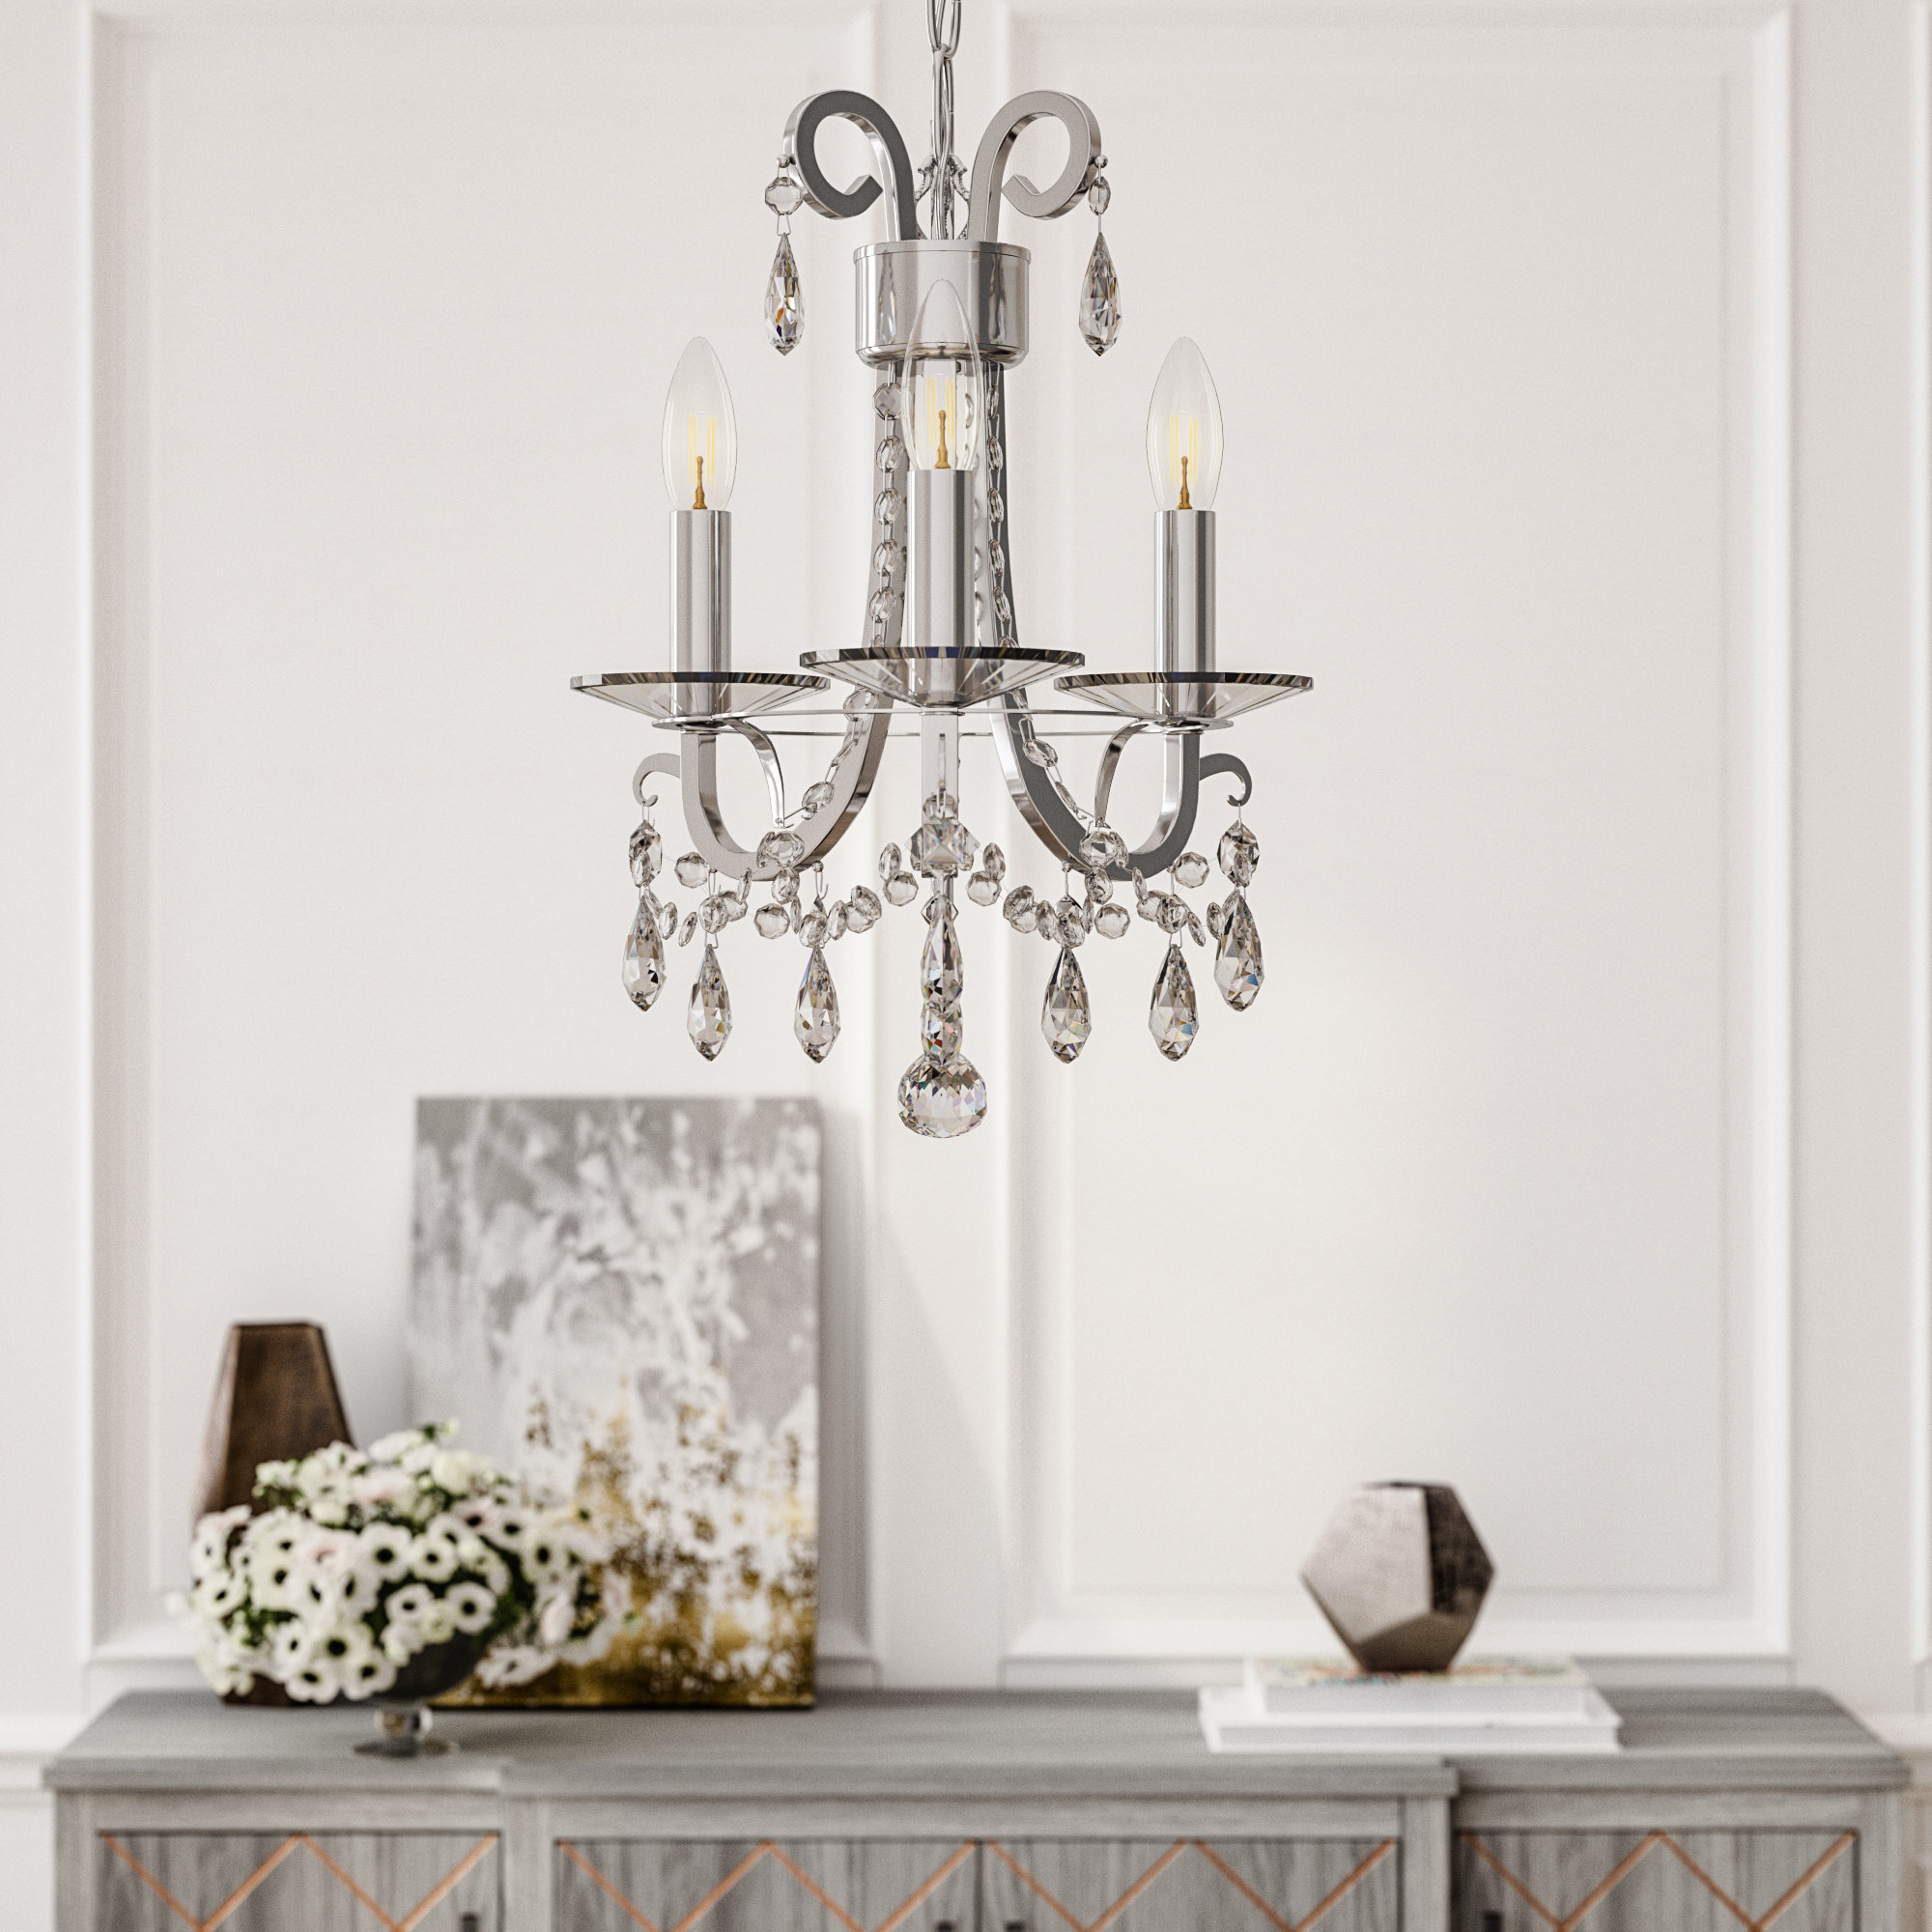 Roesler 3 Light Candle Style Chandelier With Regard To Bouchette Traditional 6 Light Candle Style Chandeliers (Gallery 27 of 30)